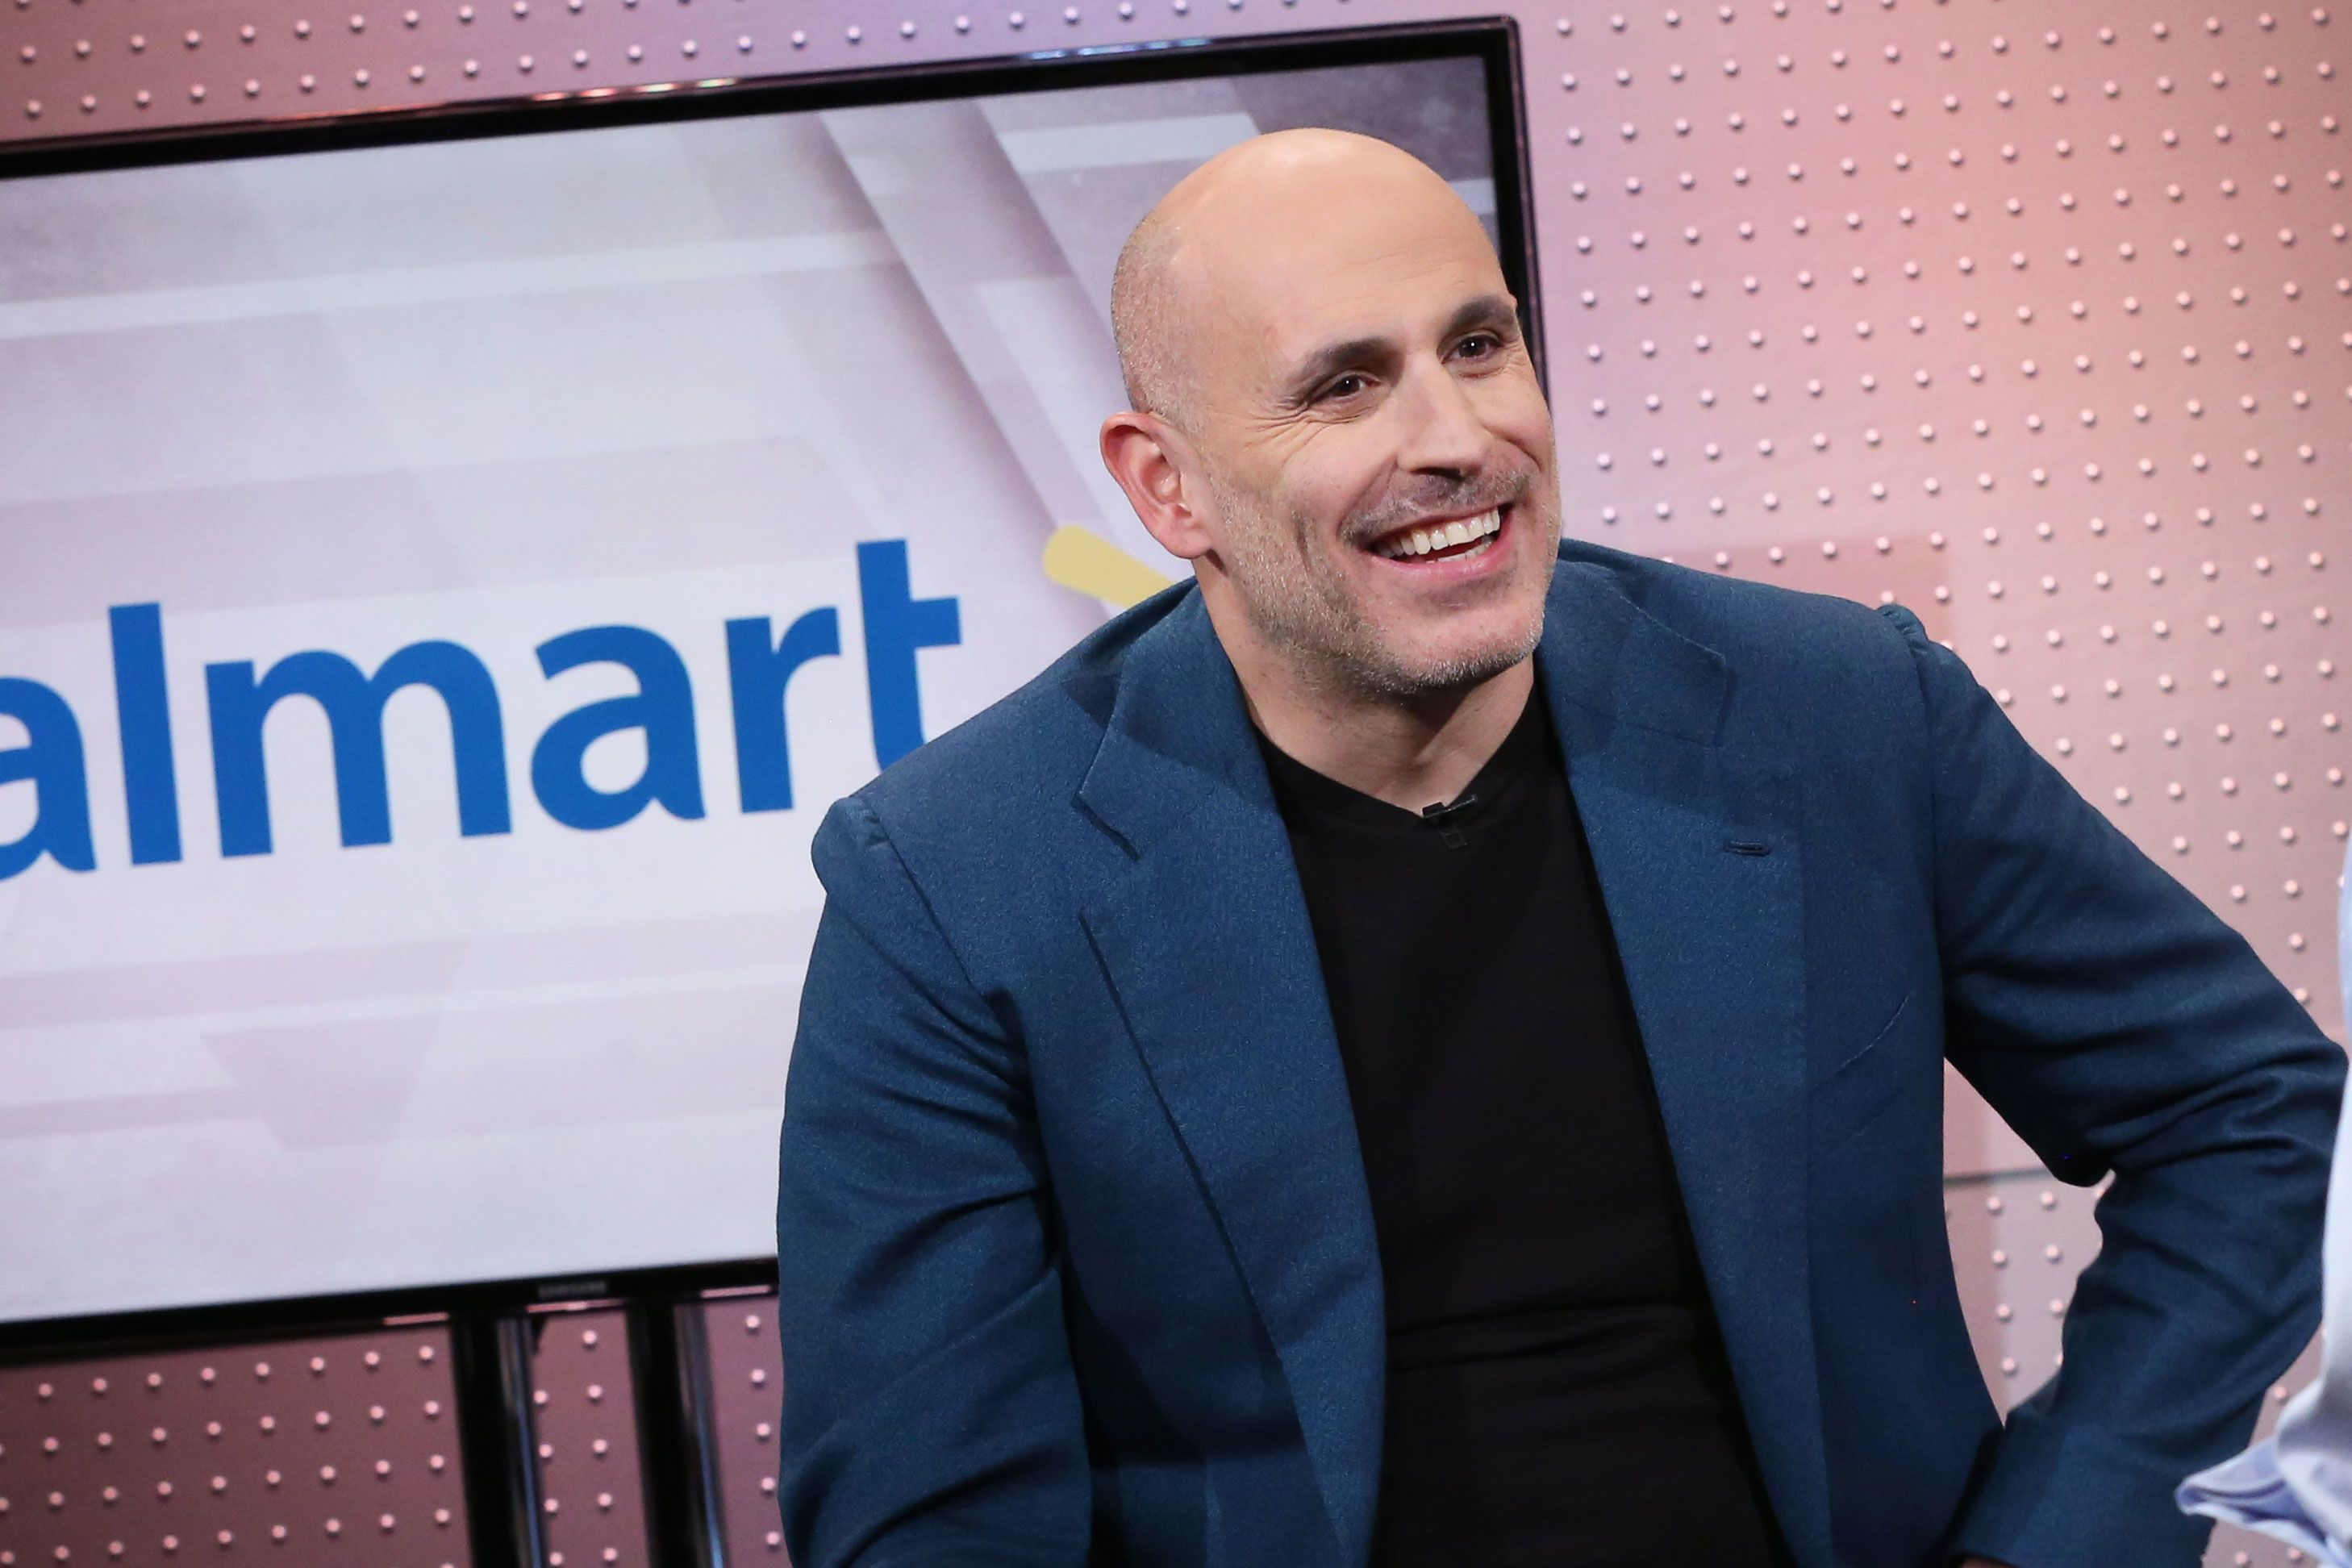 From advertising to A.I., Walmart is doing a lot more than retail